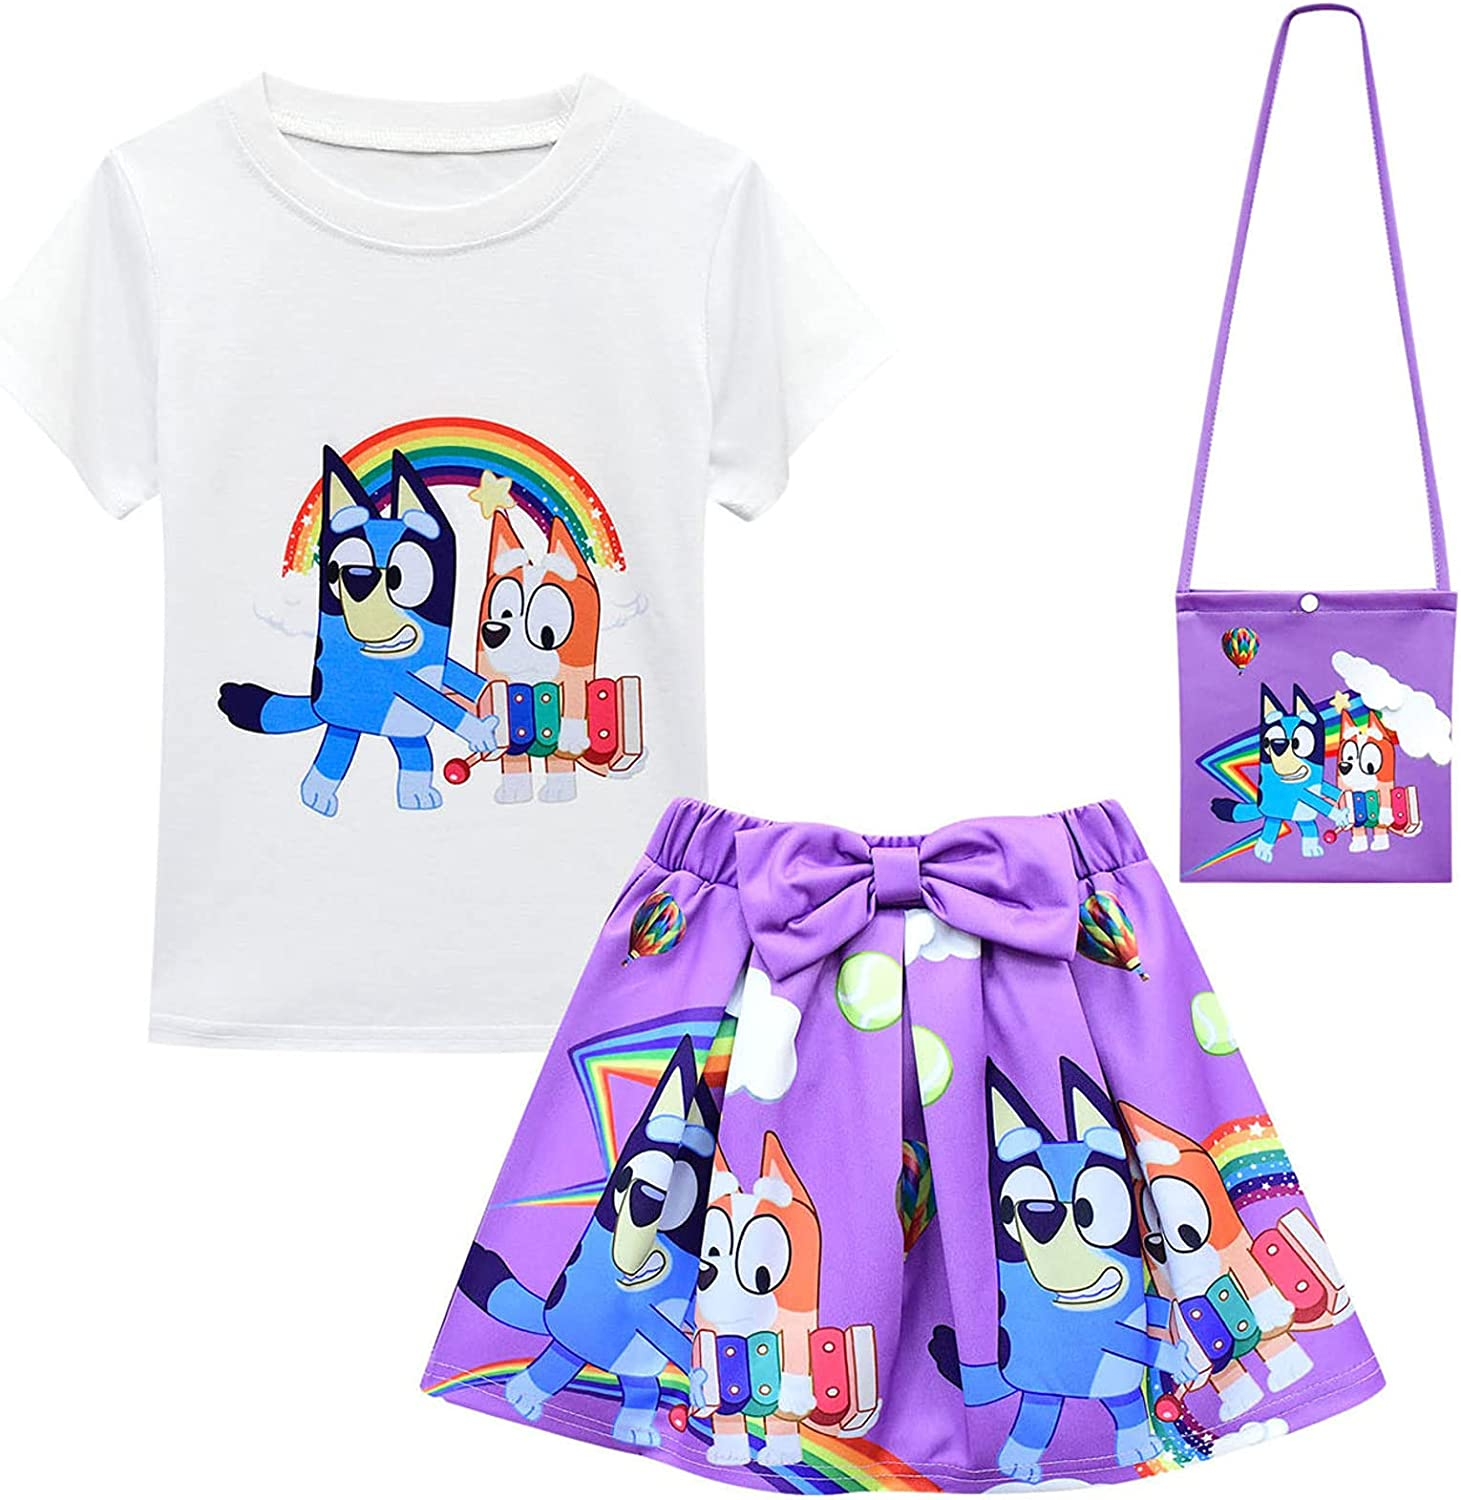 Fleeboys 3pcs Girls Skirt Sets T Shirt Top Bowknot Skirt with Bag Outfits: Clothing, Shoes & Jewelry